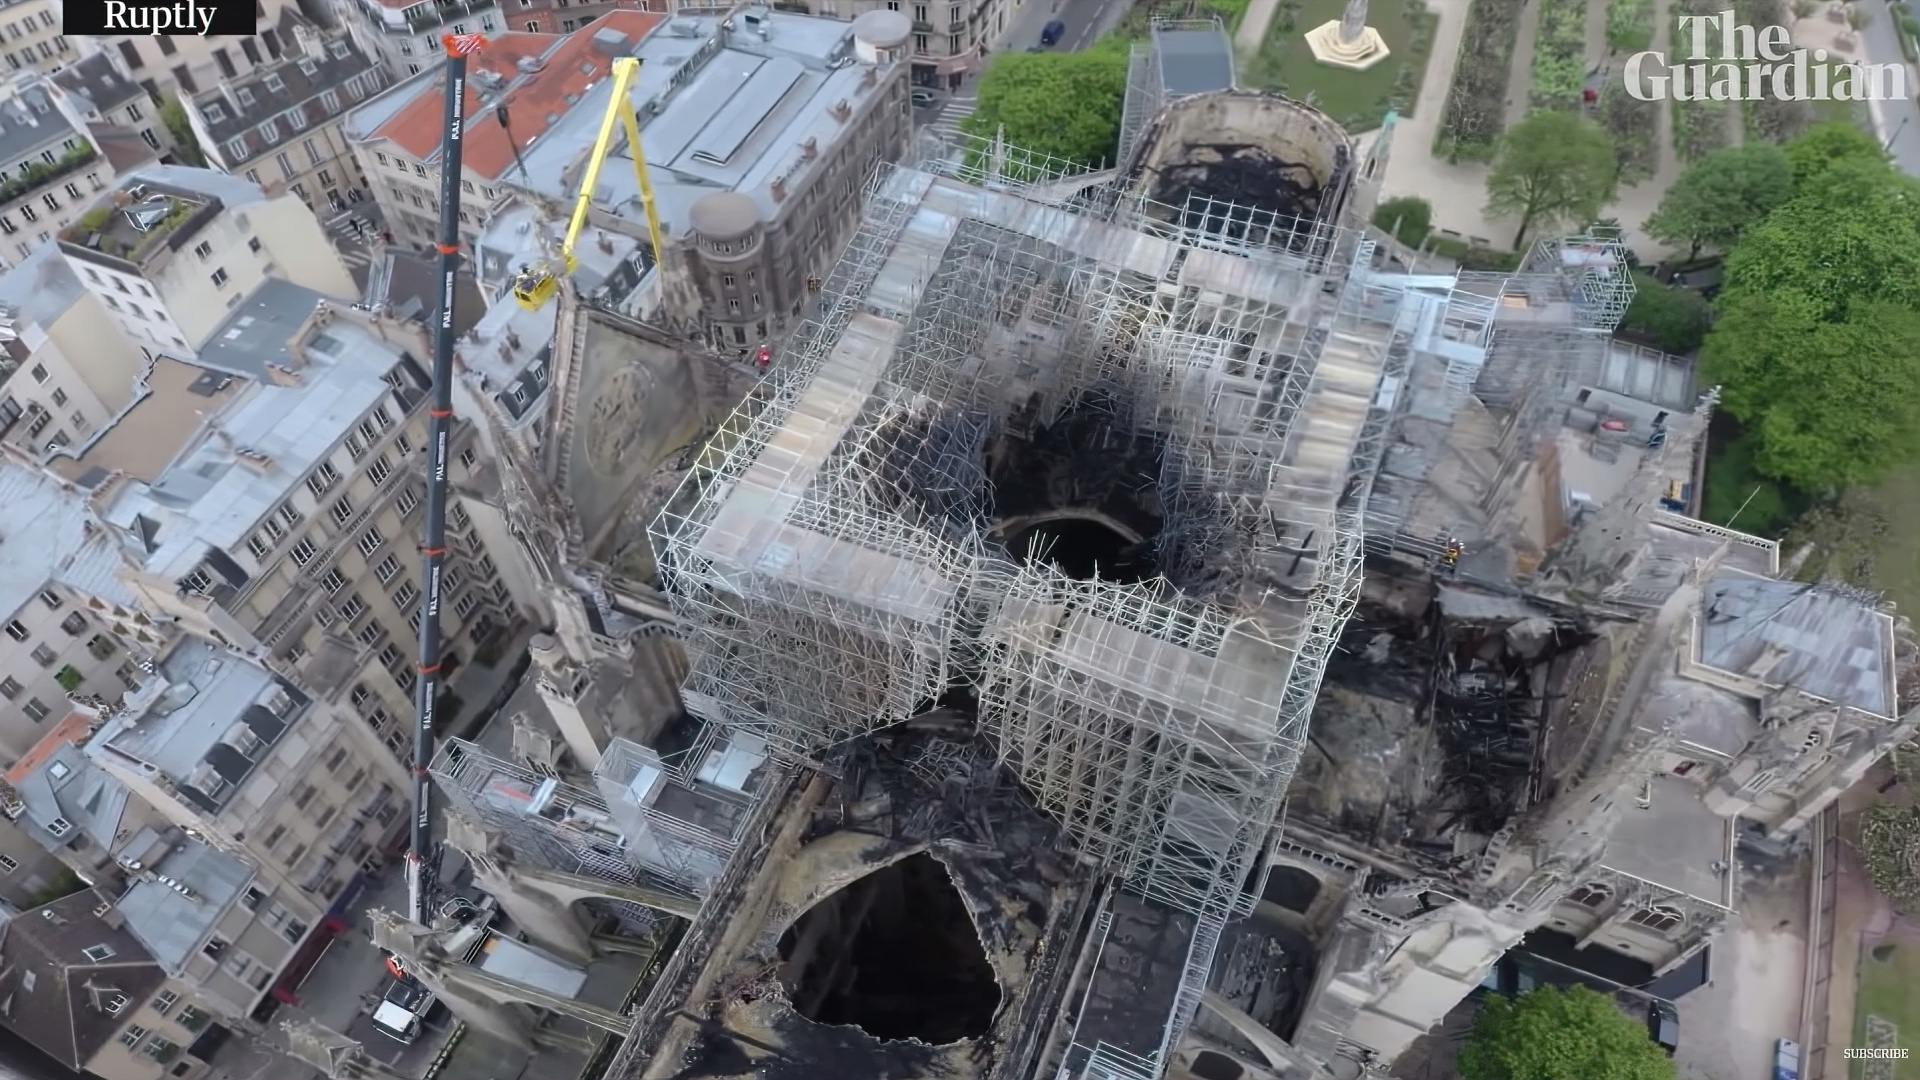 Drone footage shows fire damage of Notre Dame Cathedral